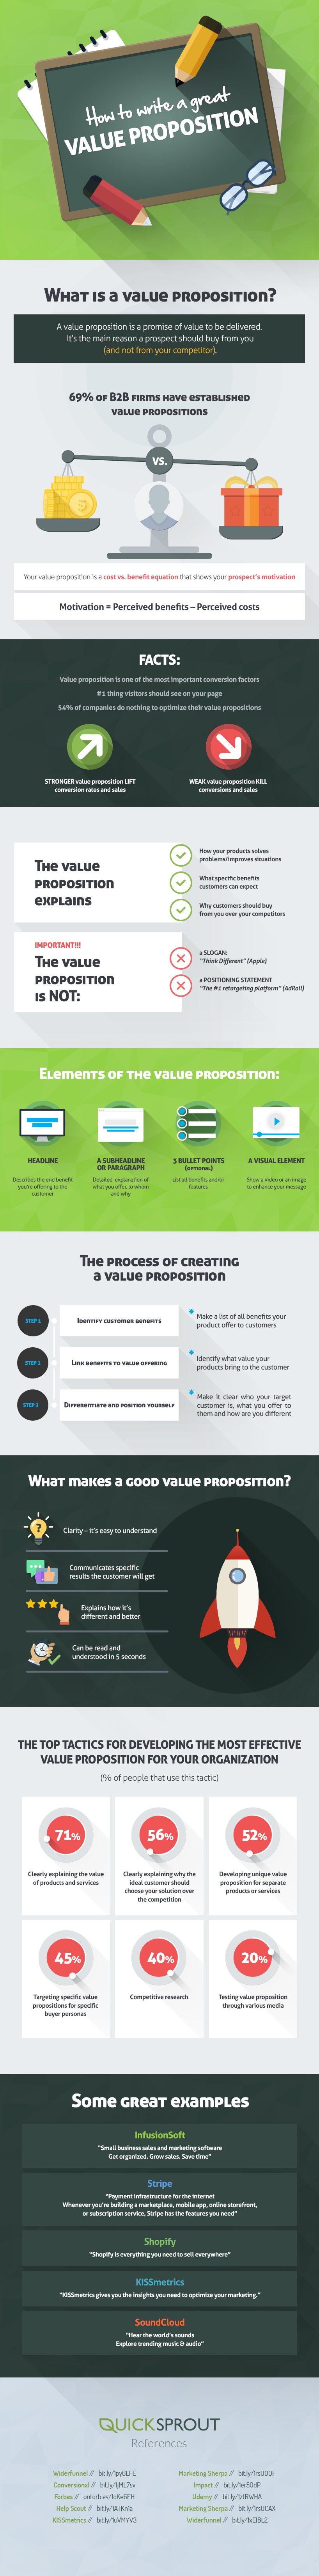 Guide to Writing a Great Value Proposition (Infographic)